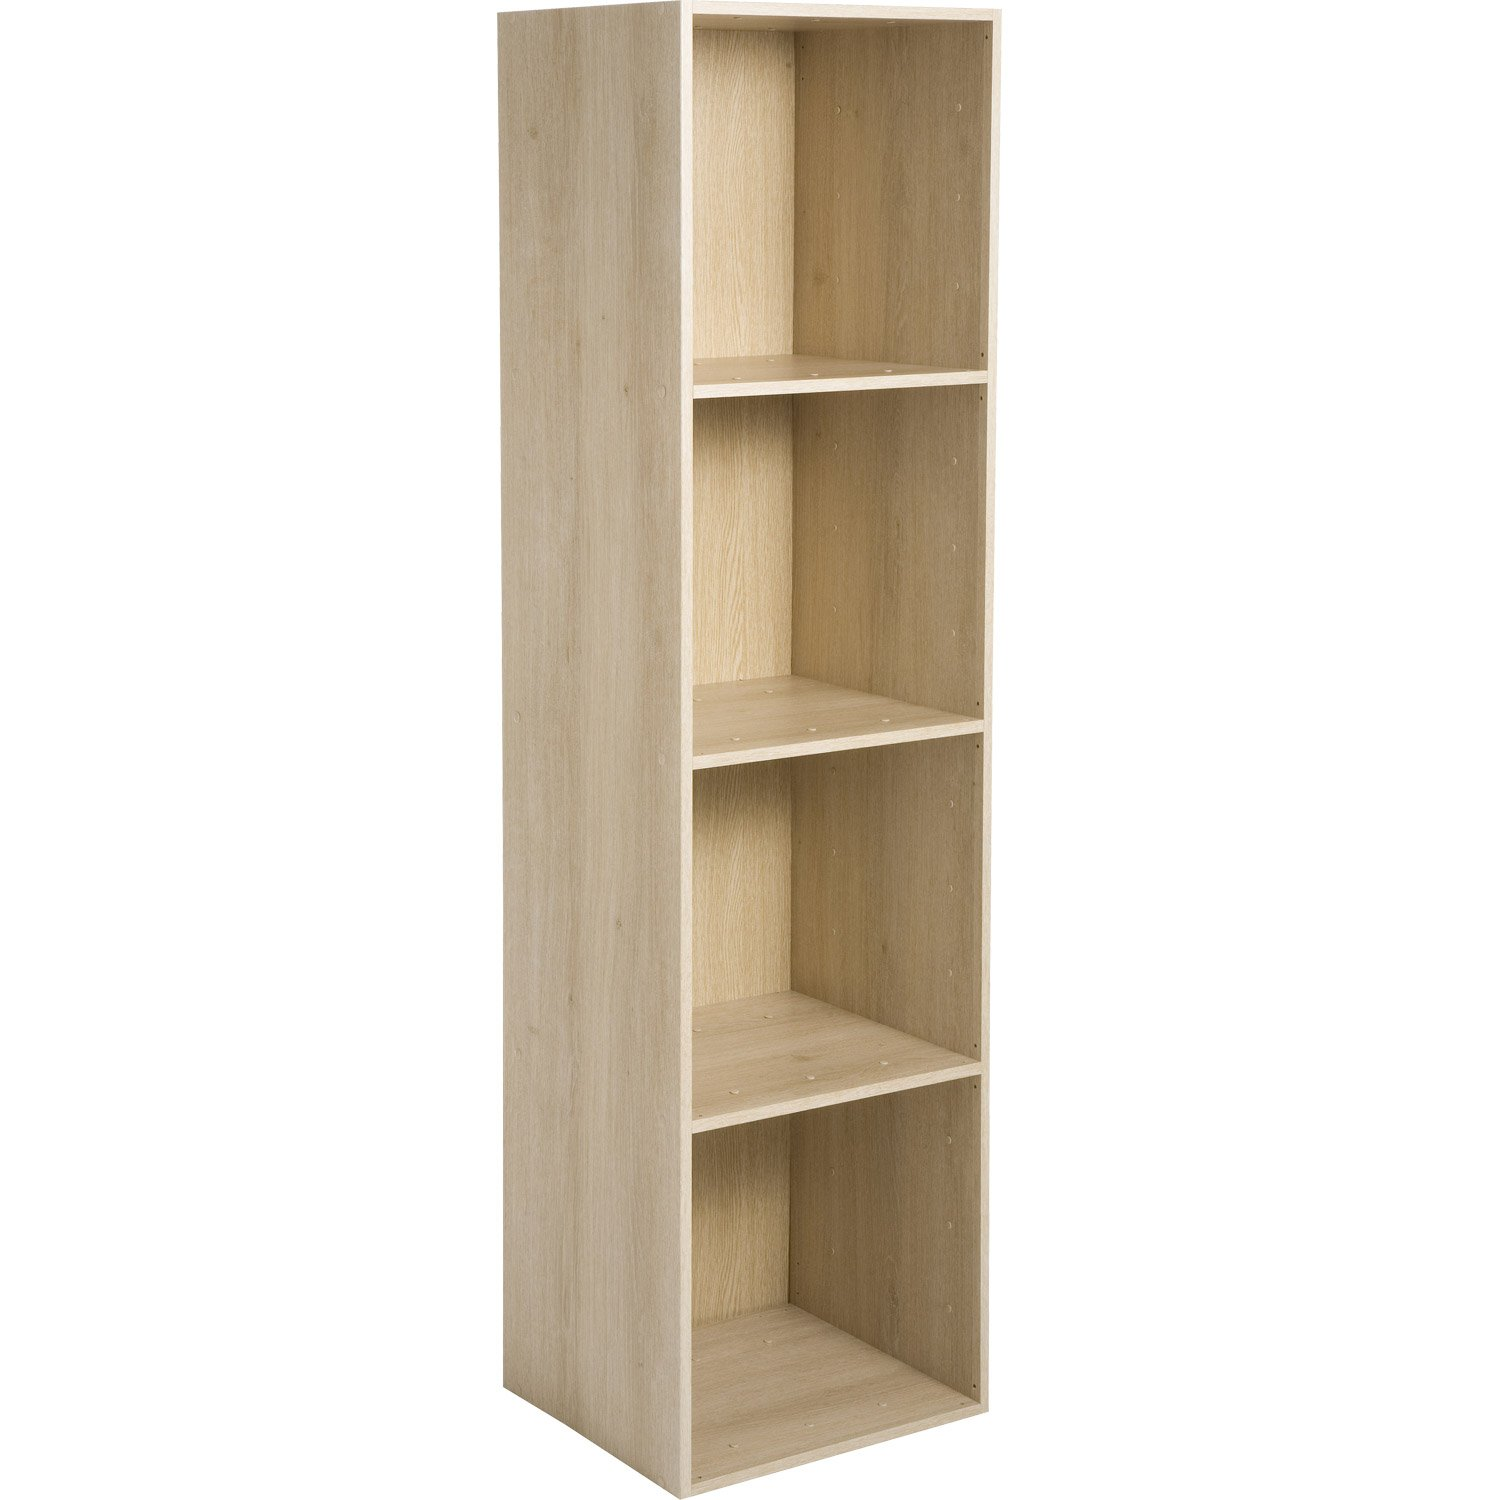 Shelf for Meuble bureau etagere